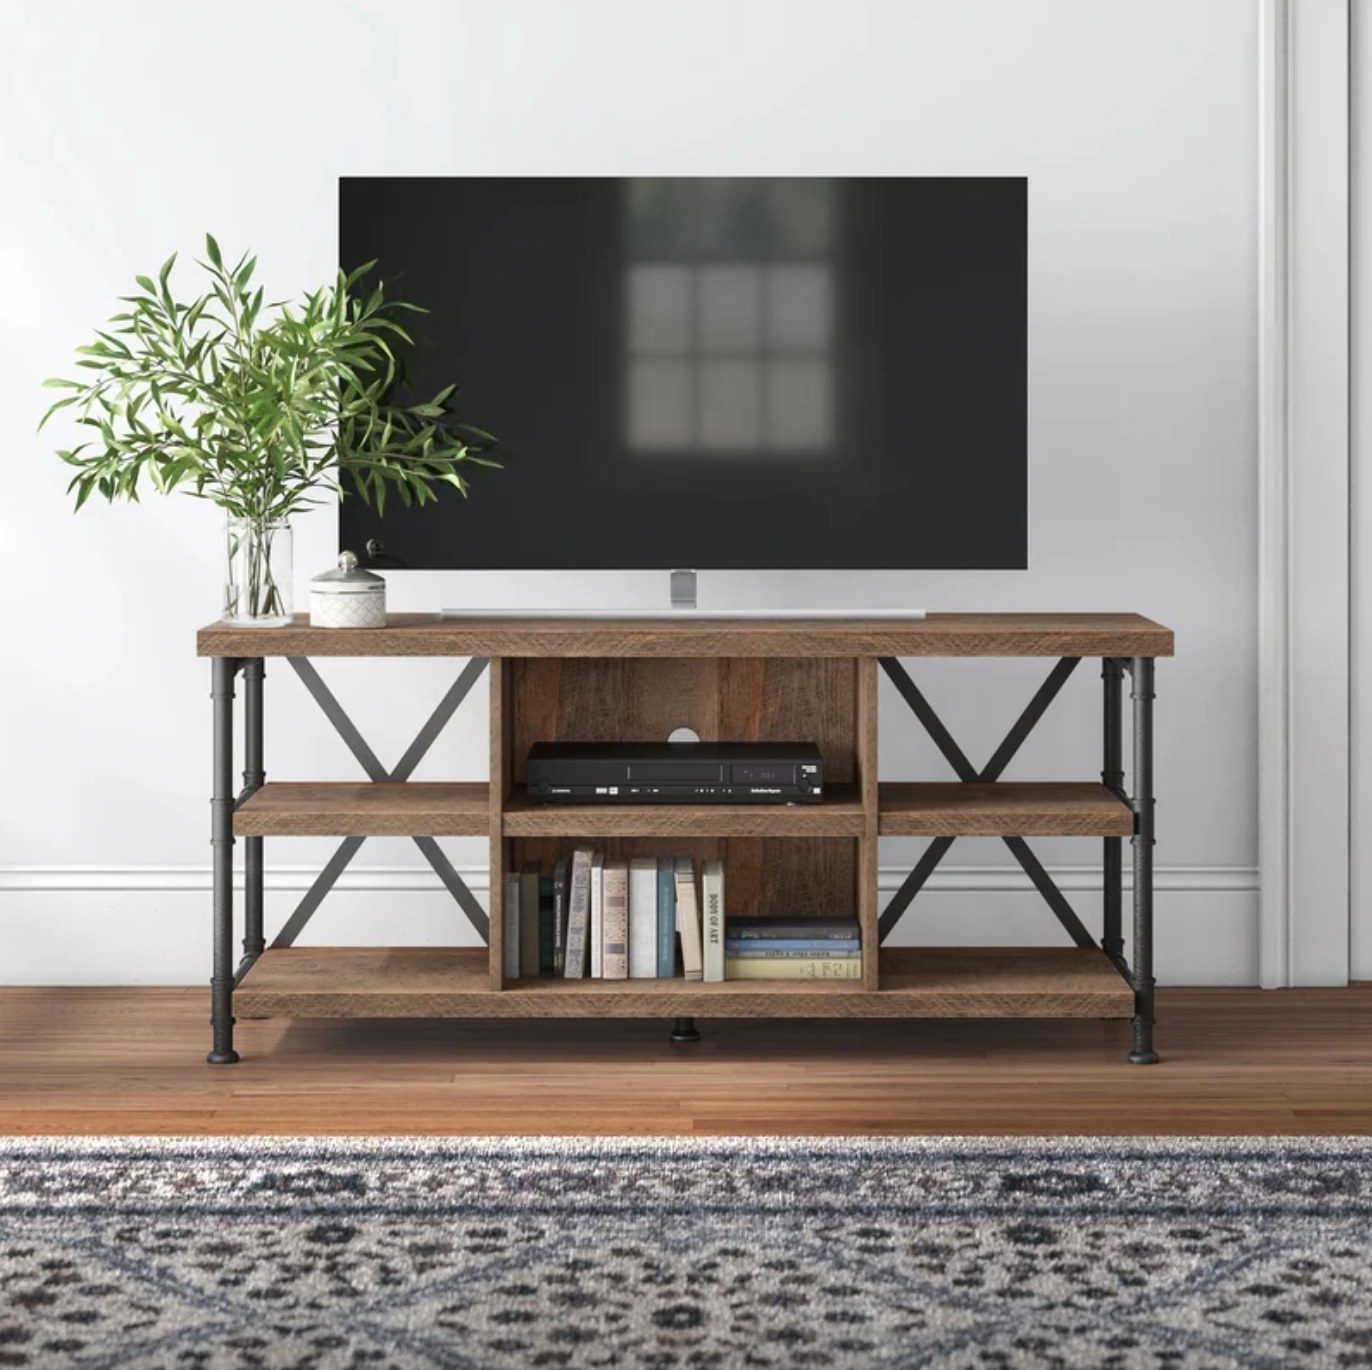 The wood TV stand with metal legs holding a flat-screen TV and a vase of flowers